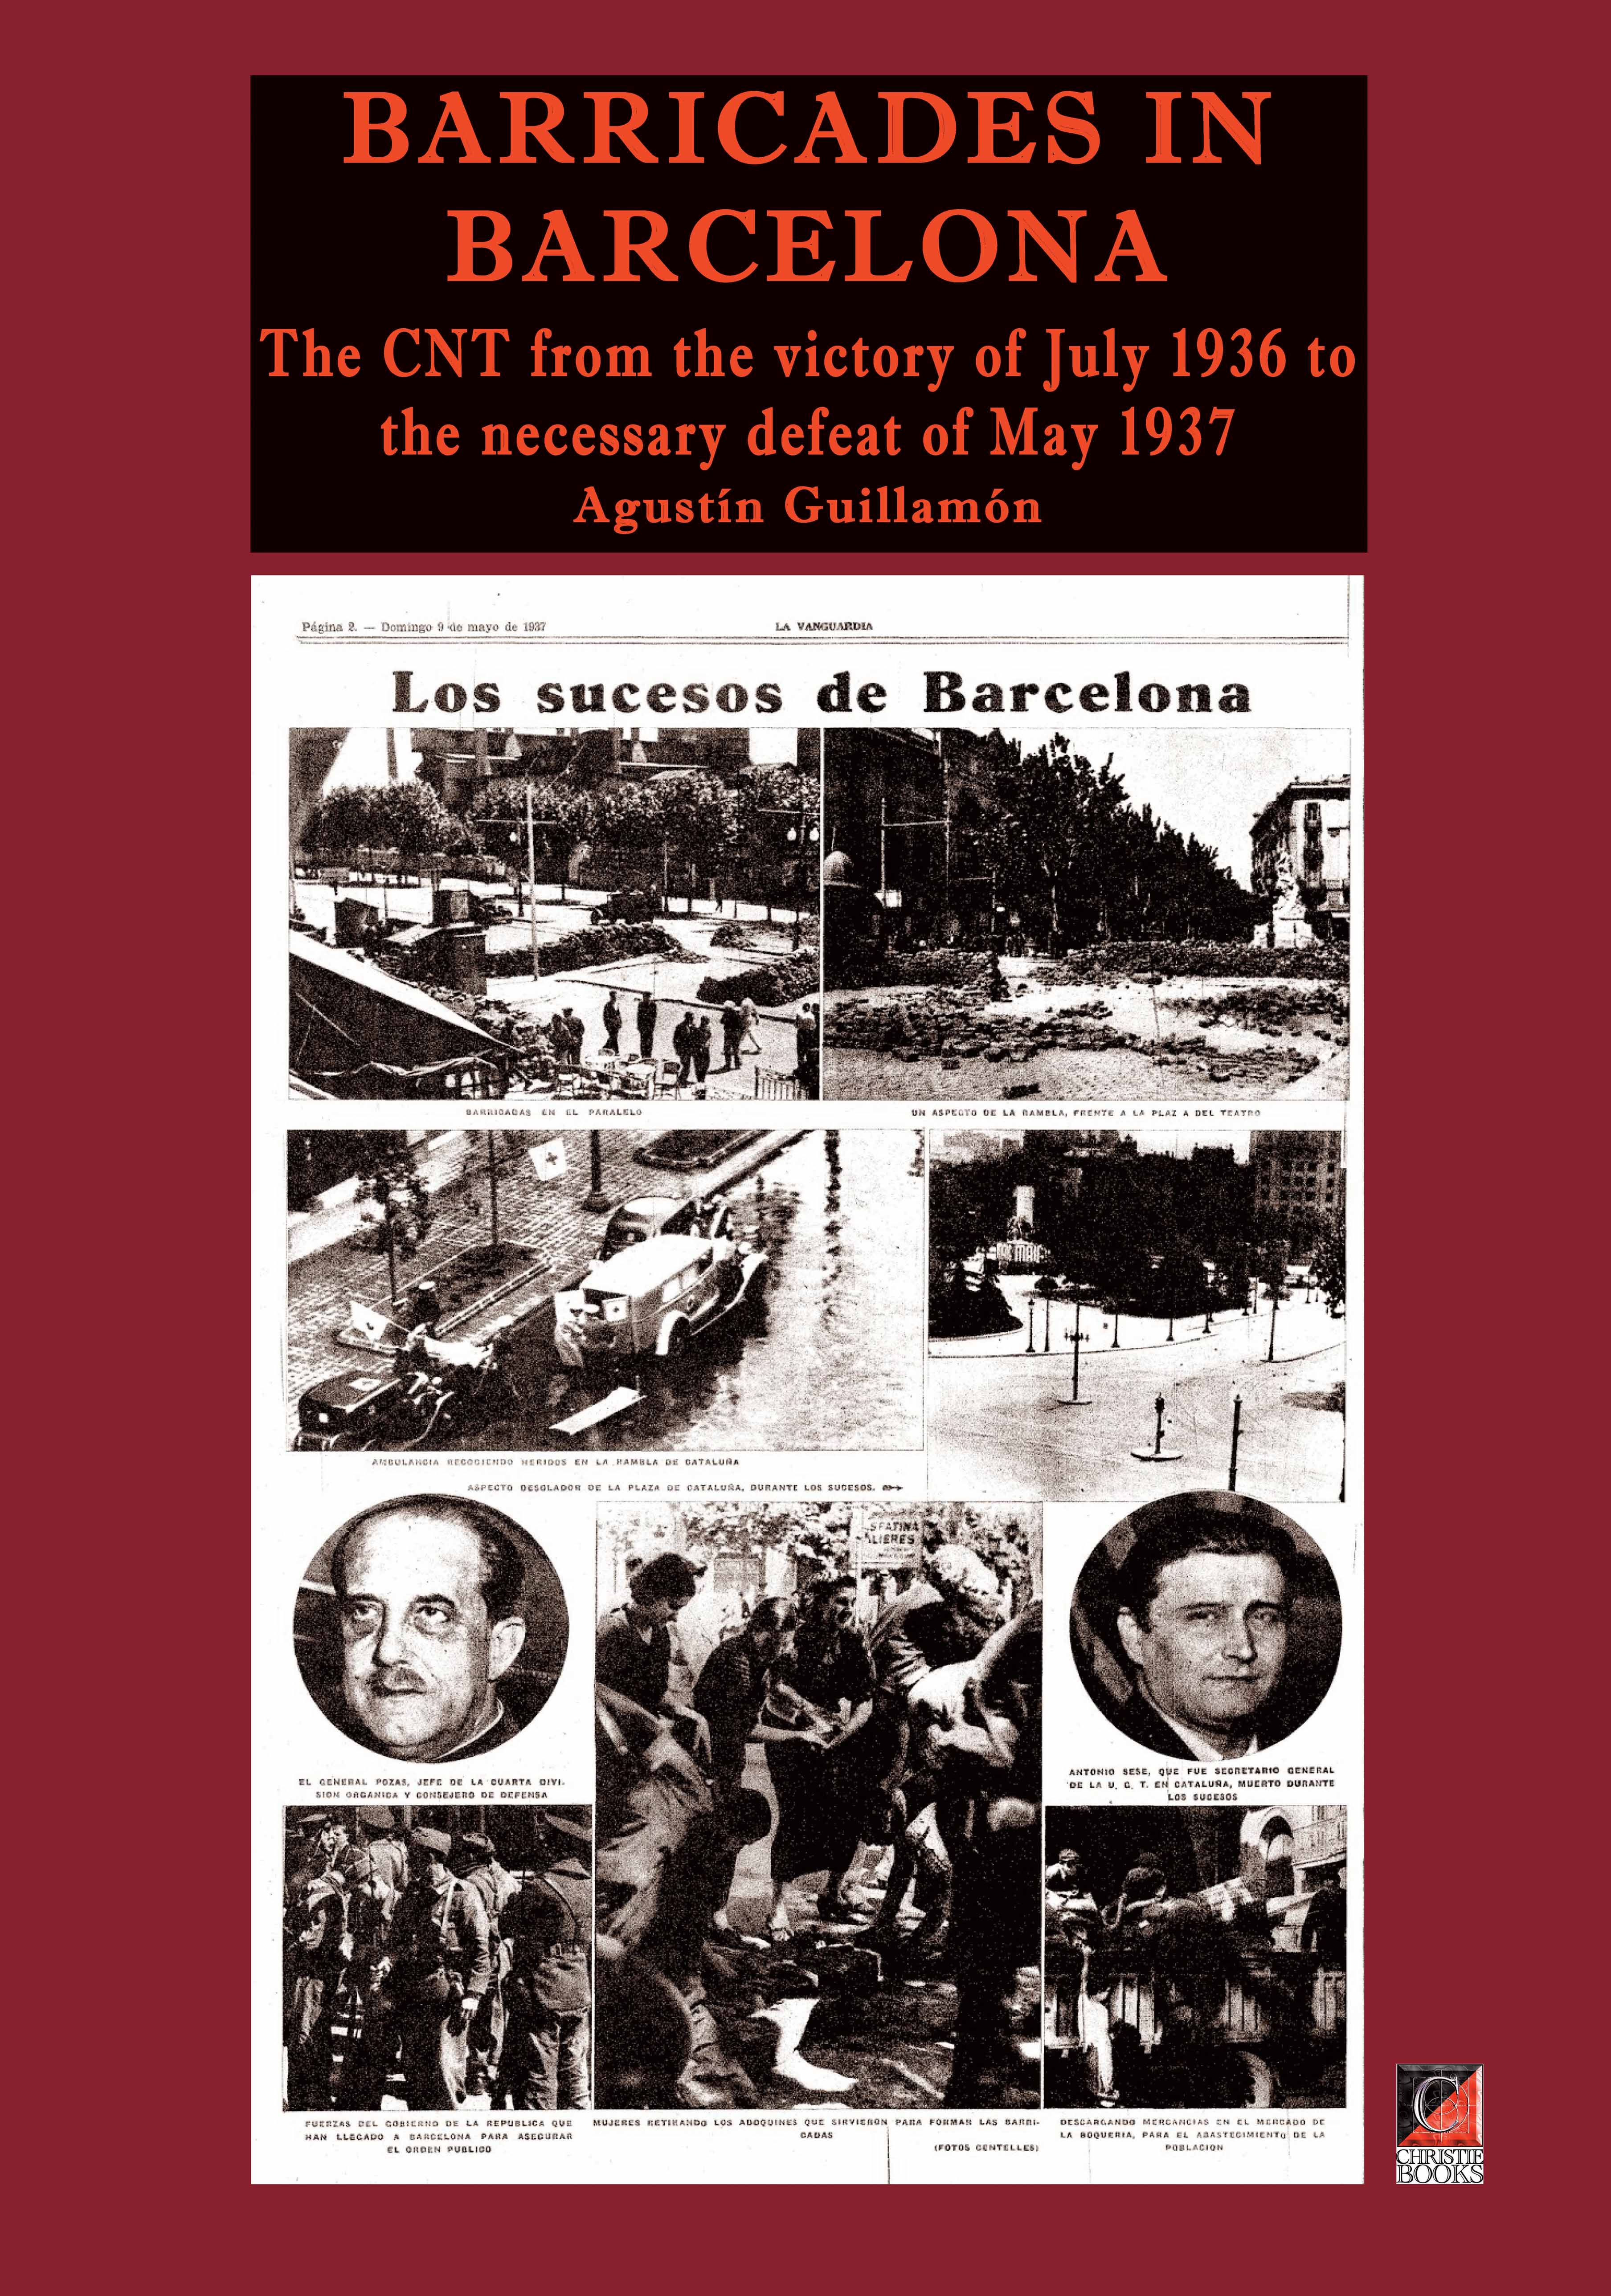 BARRICADES IN BARCELONA. The CNT from the victory of July 1936 to the necessary defeat of May 1937